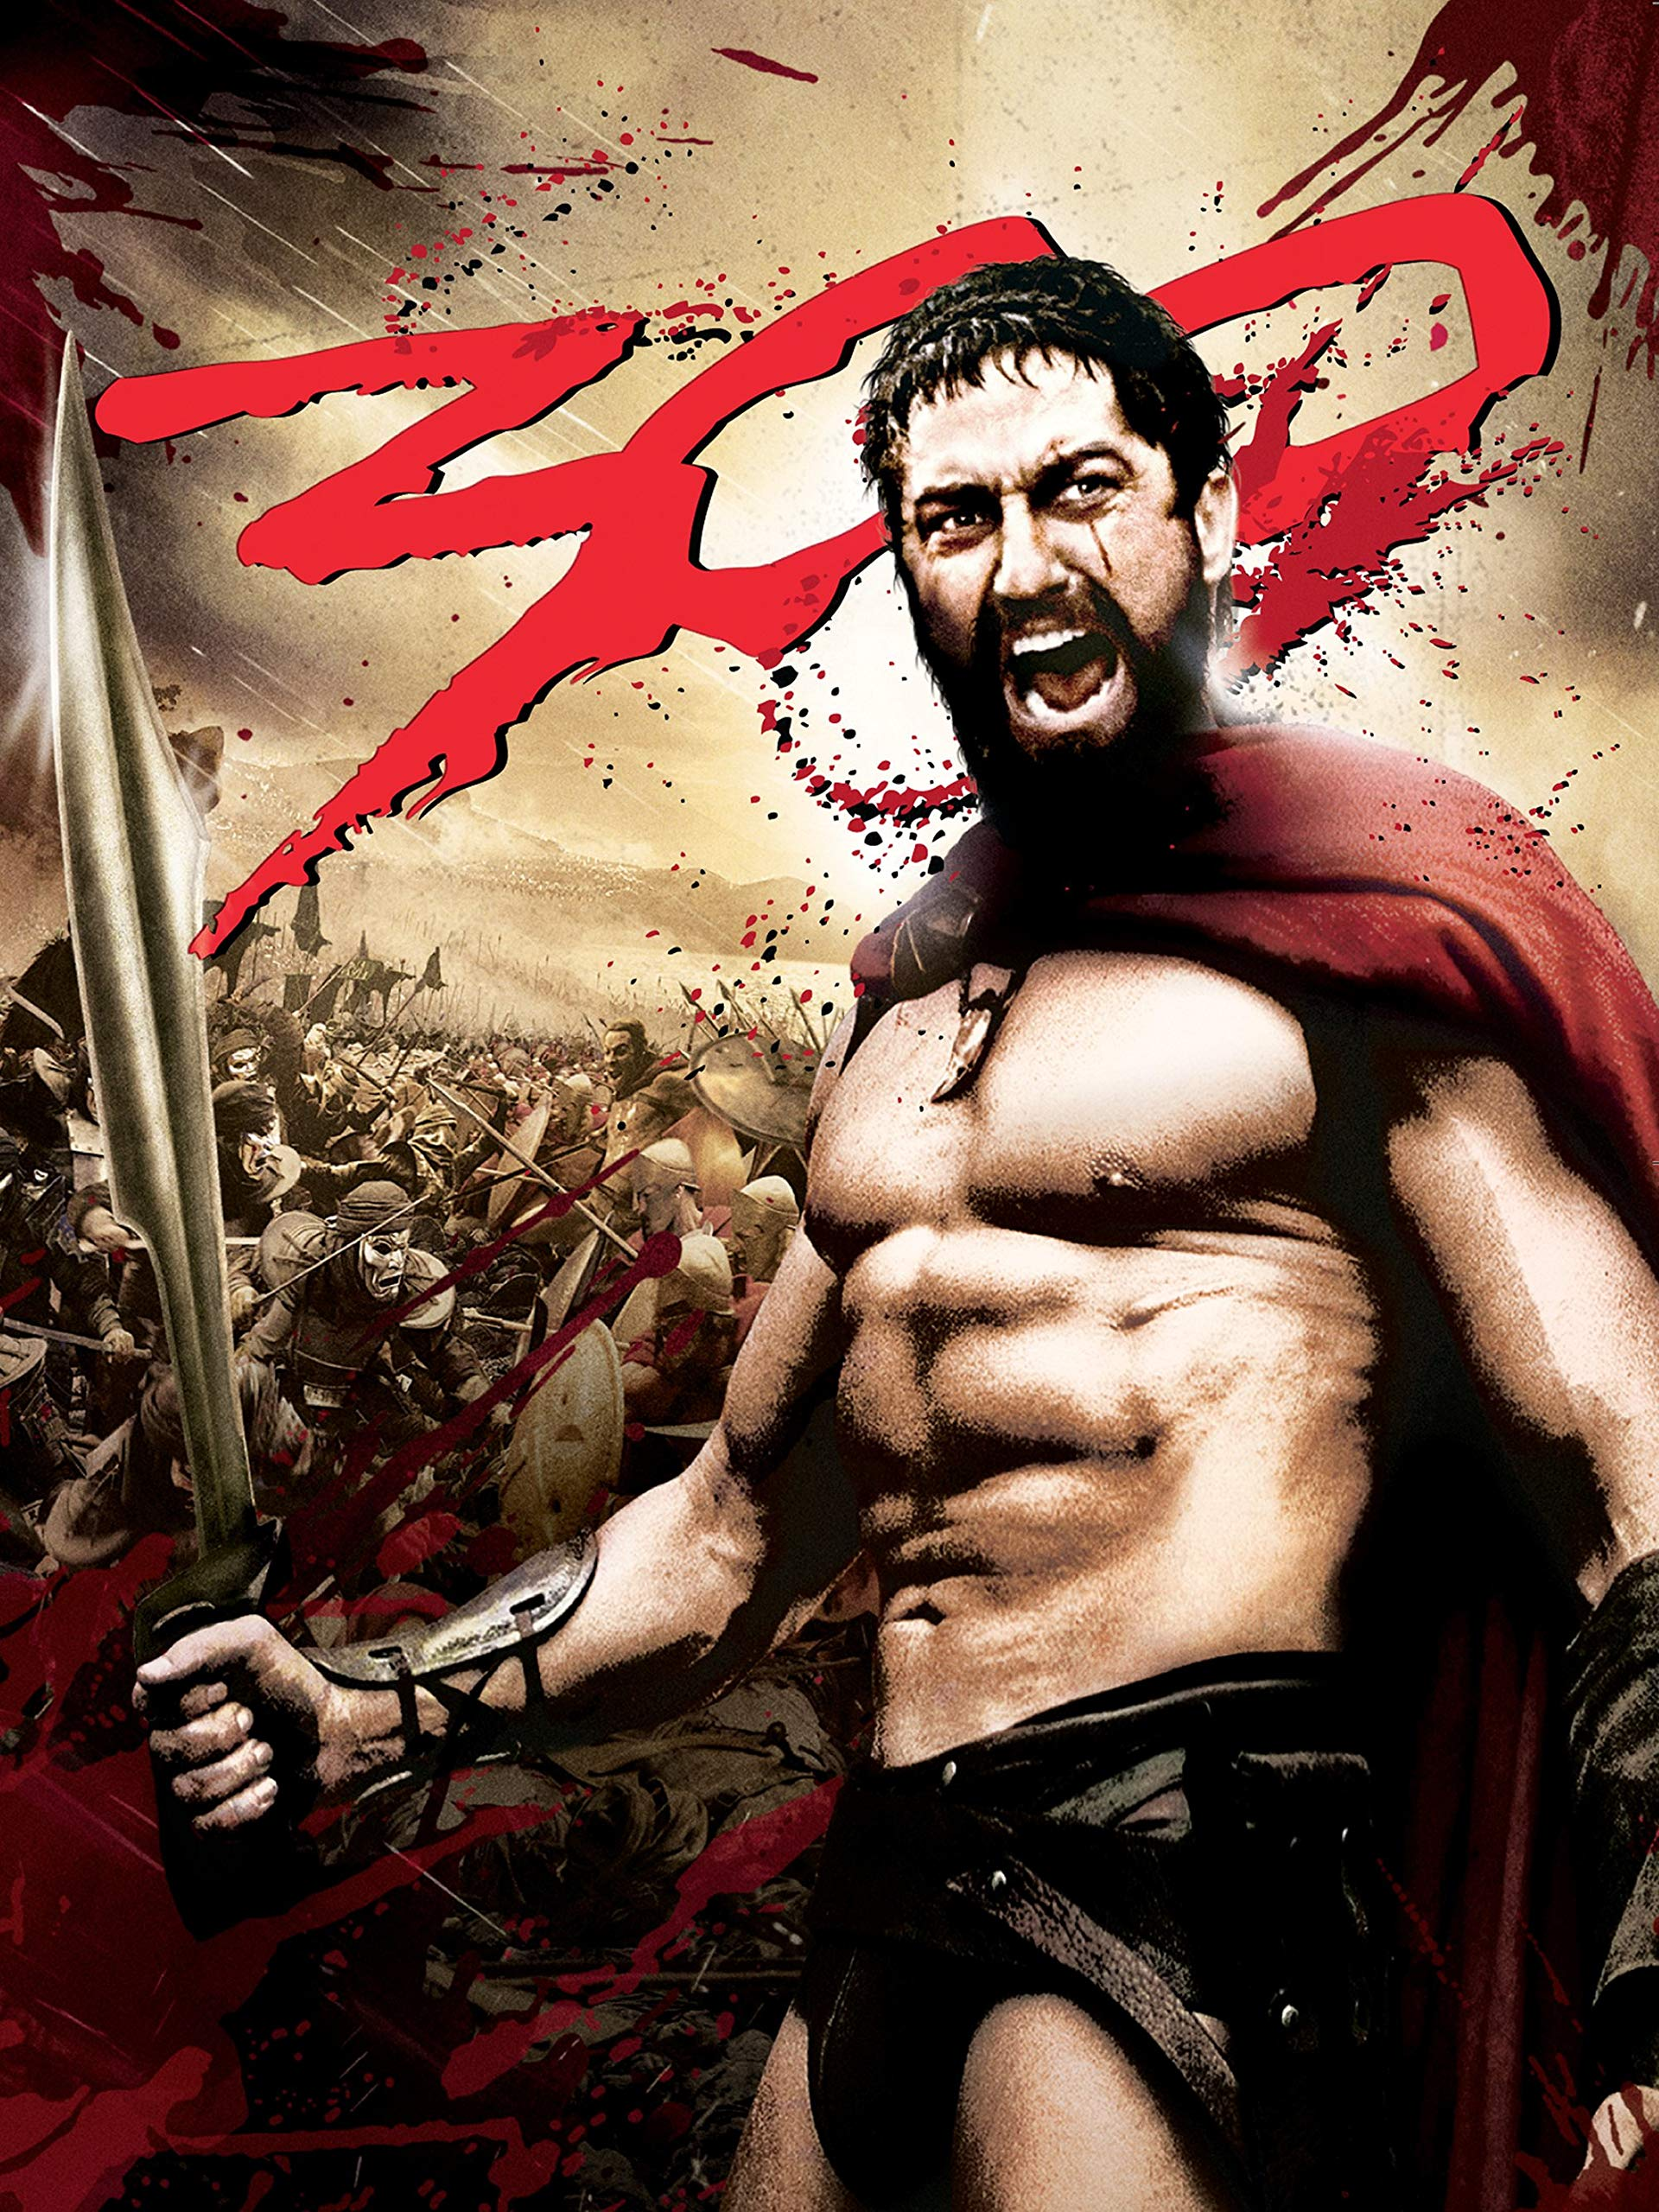 300 full movie free download in english hd